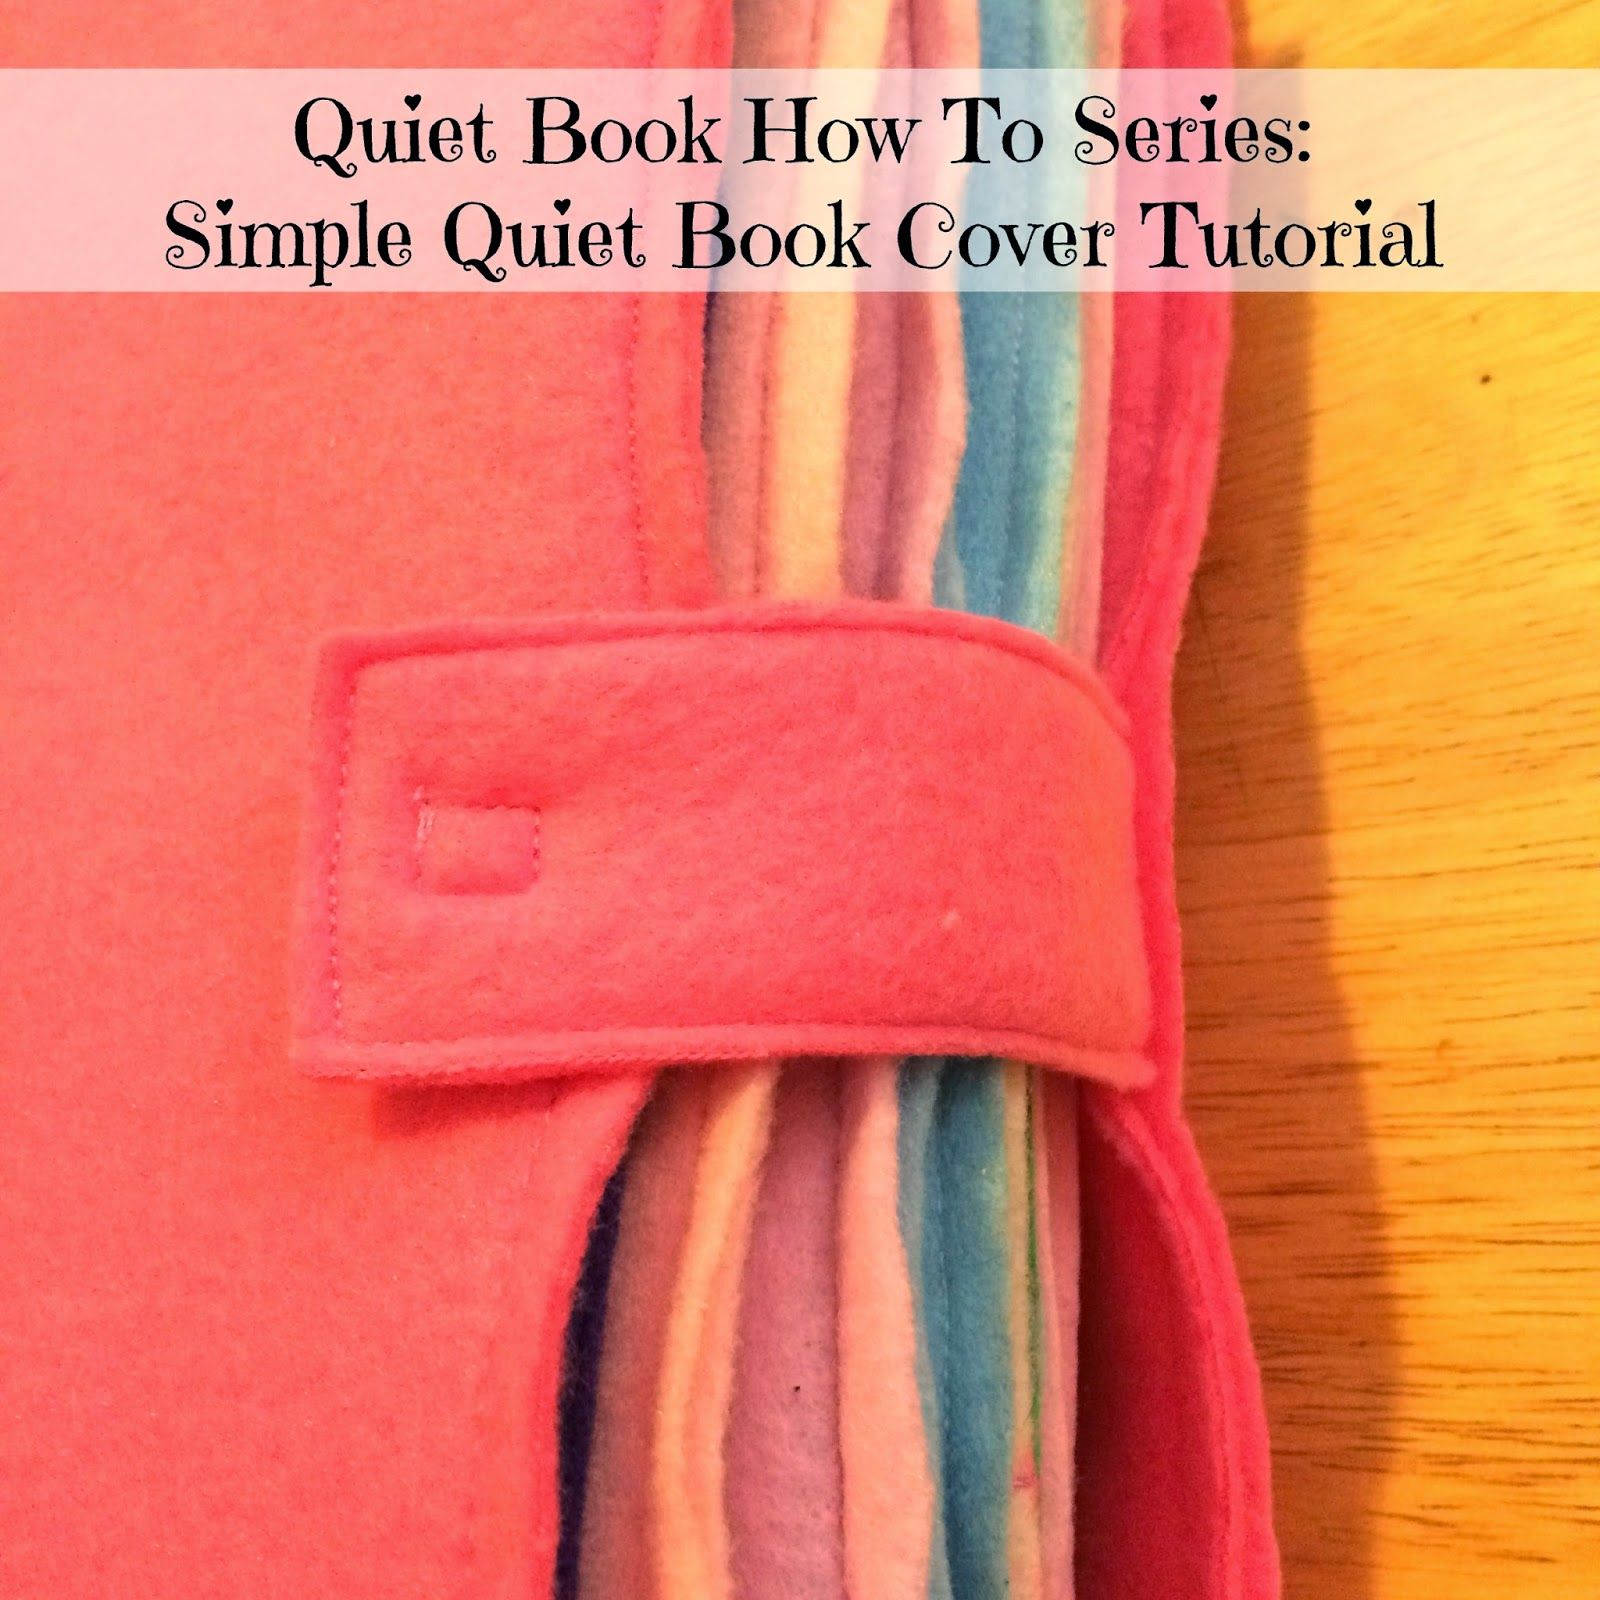 First Time Mom And Losing It: Quiet Book How To Series